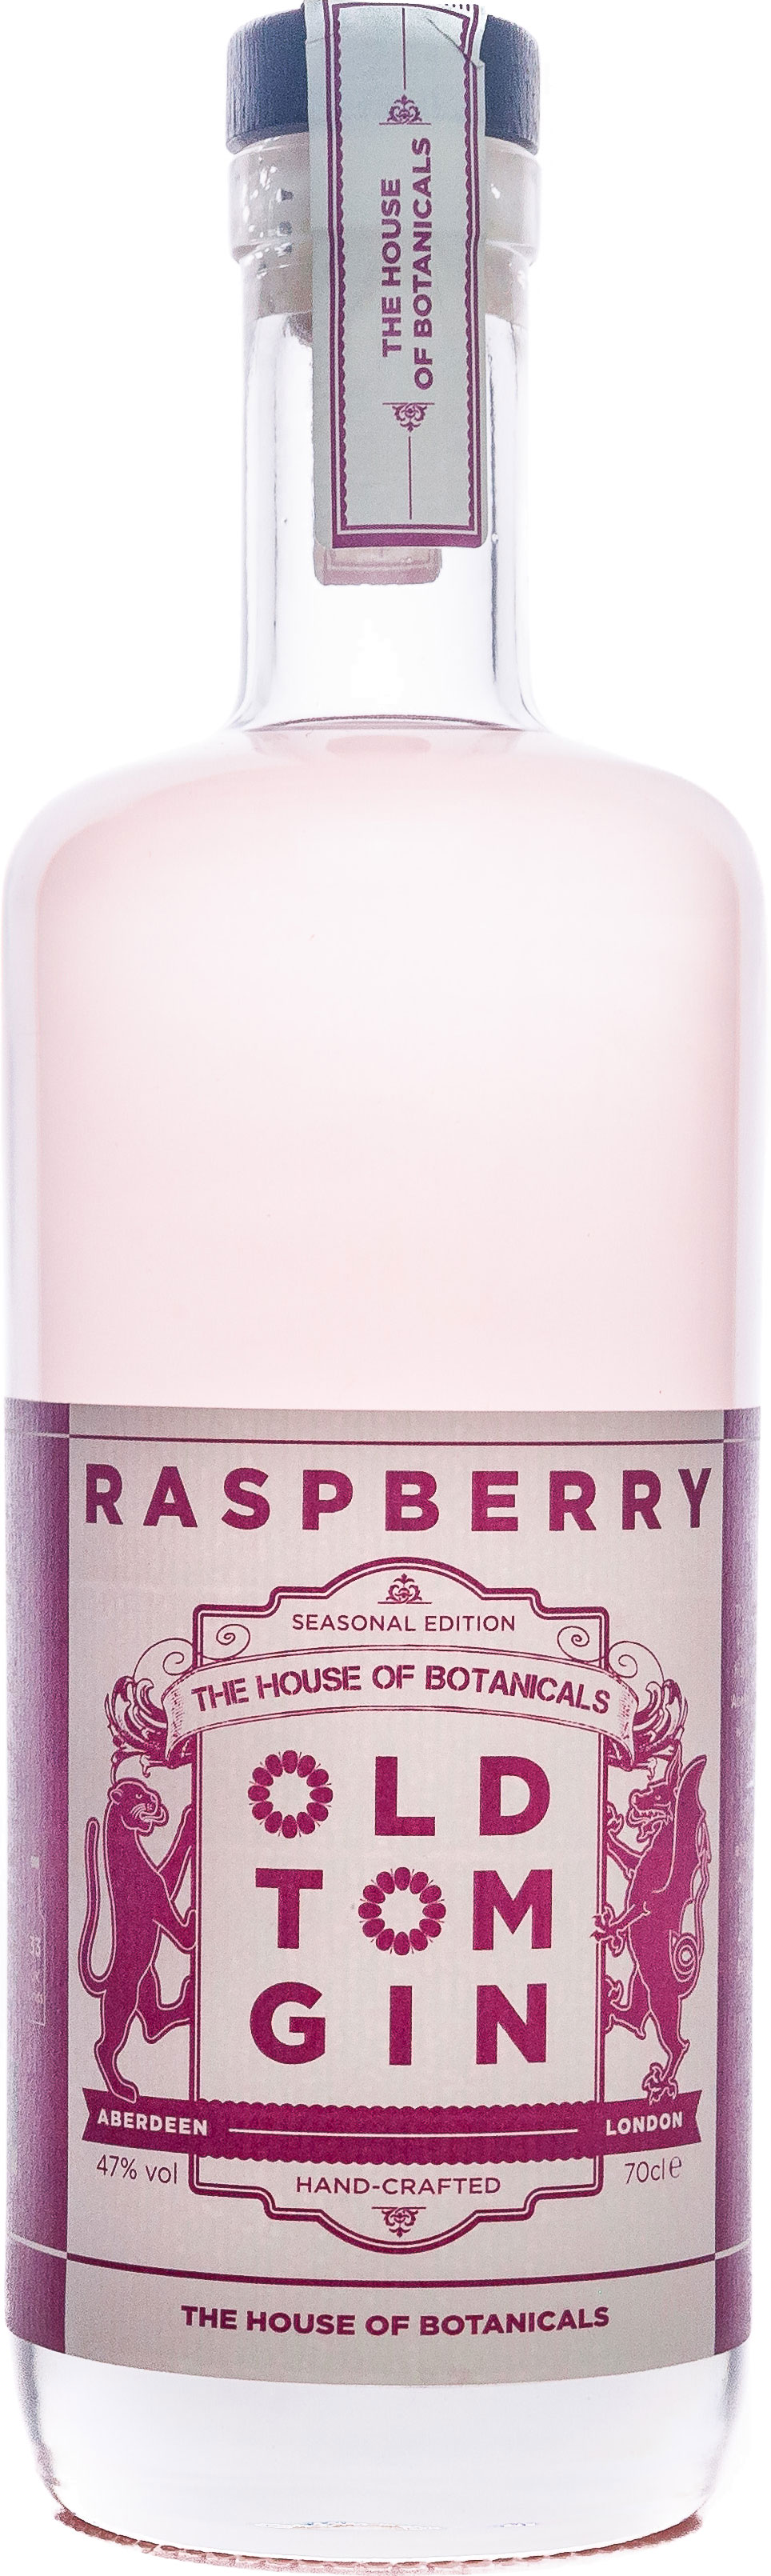 House of Botanicals - Raspberry Old Tom Gin 70cl Bottle